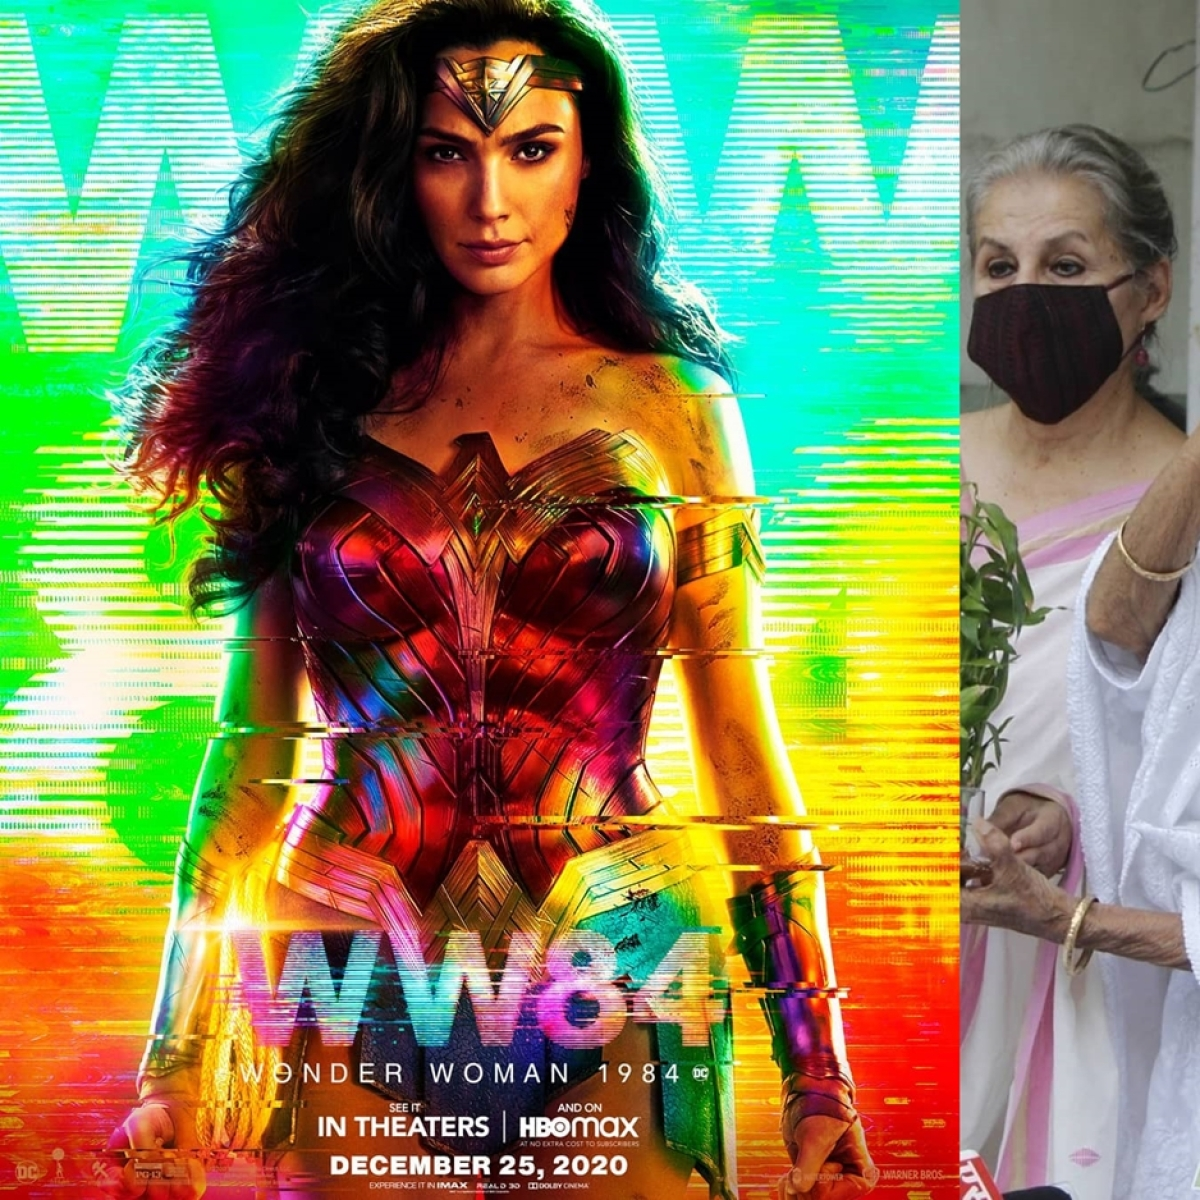 Gal Gadot picks Shaheen Bagh's Bilkis Dadi as her personal 'Wonder Woman'